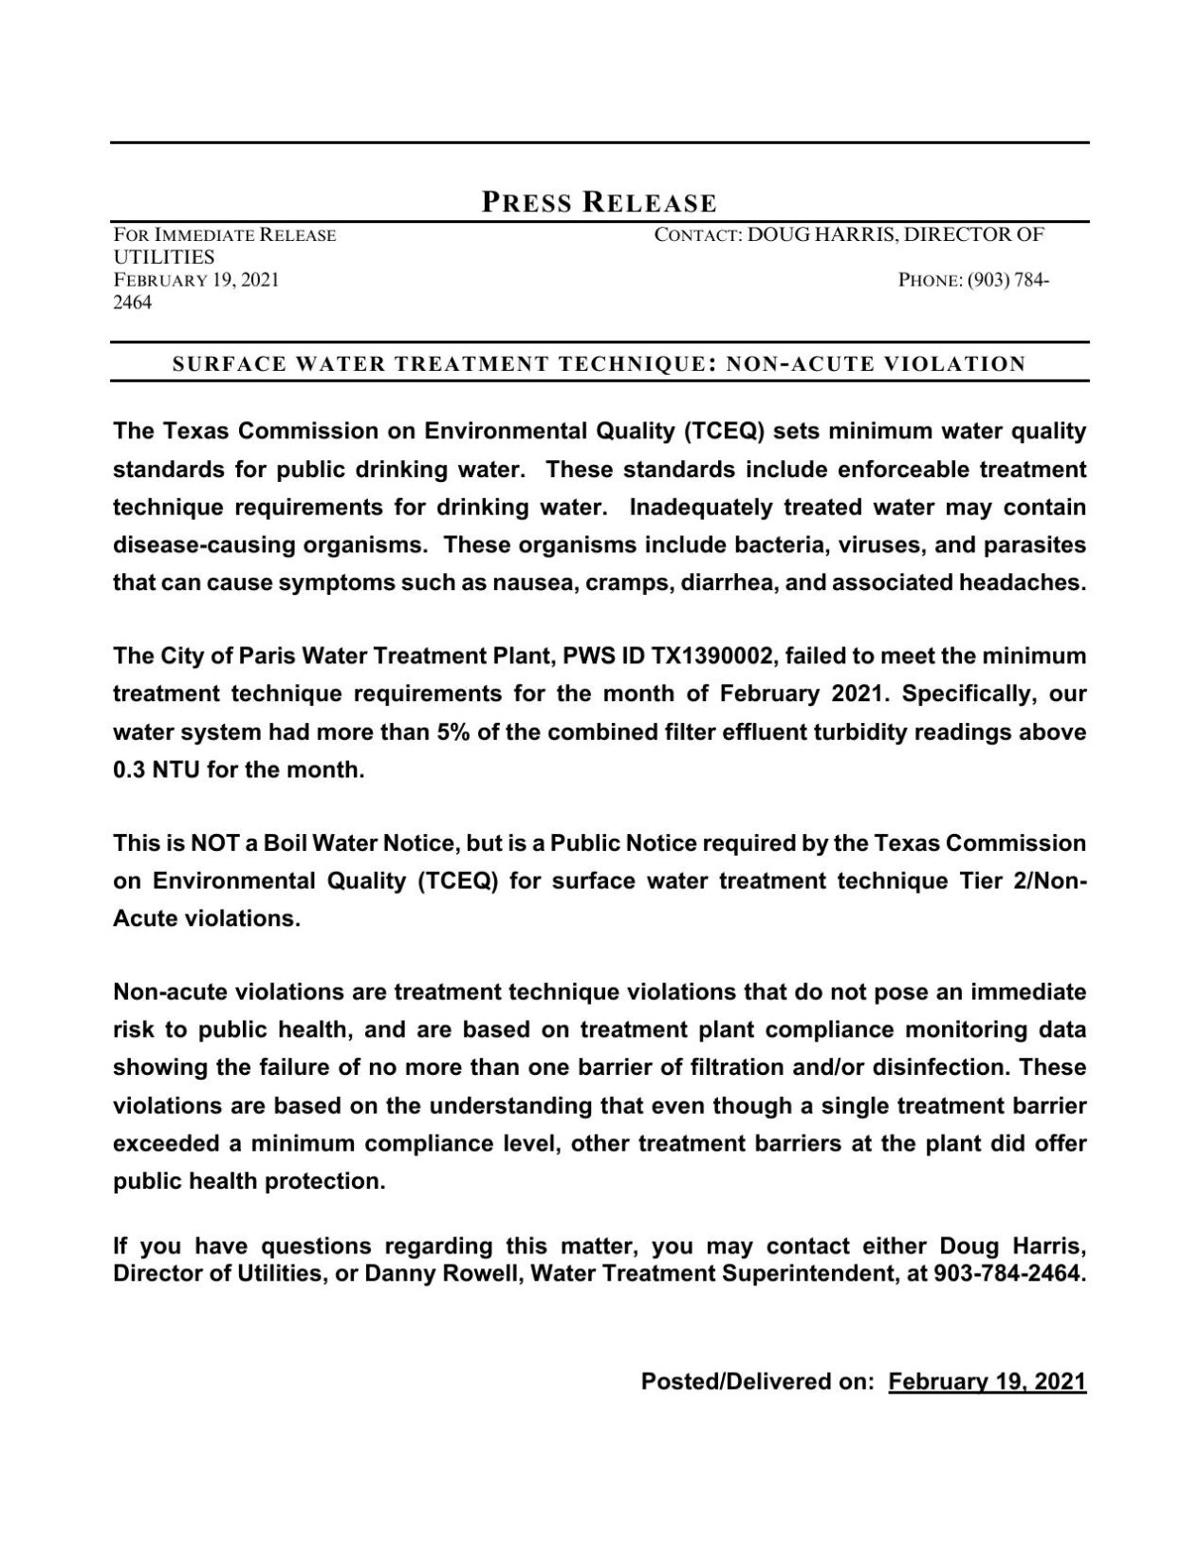 City of Paris Public Notice 02-19-2021.pdf